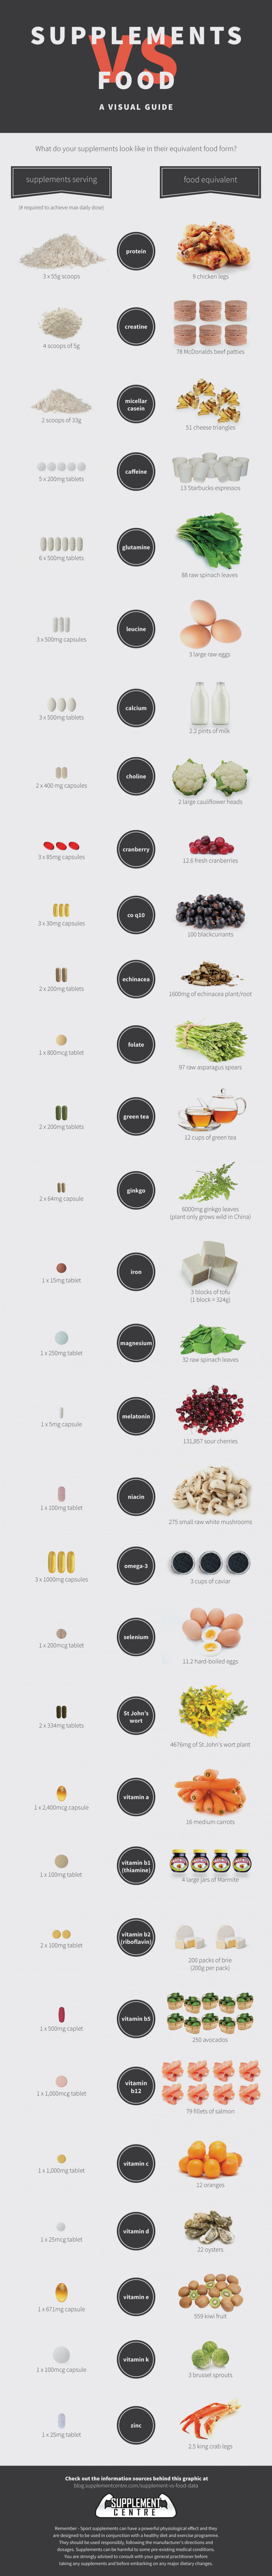 Supplements Vs Food - A Visual Guide  Infographic